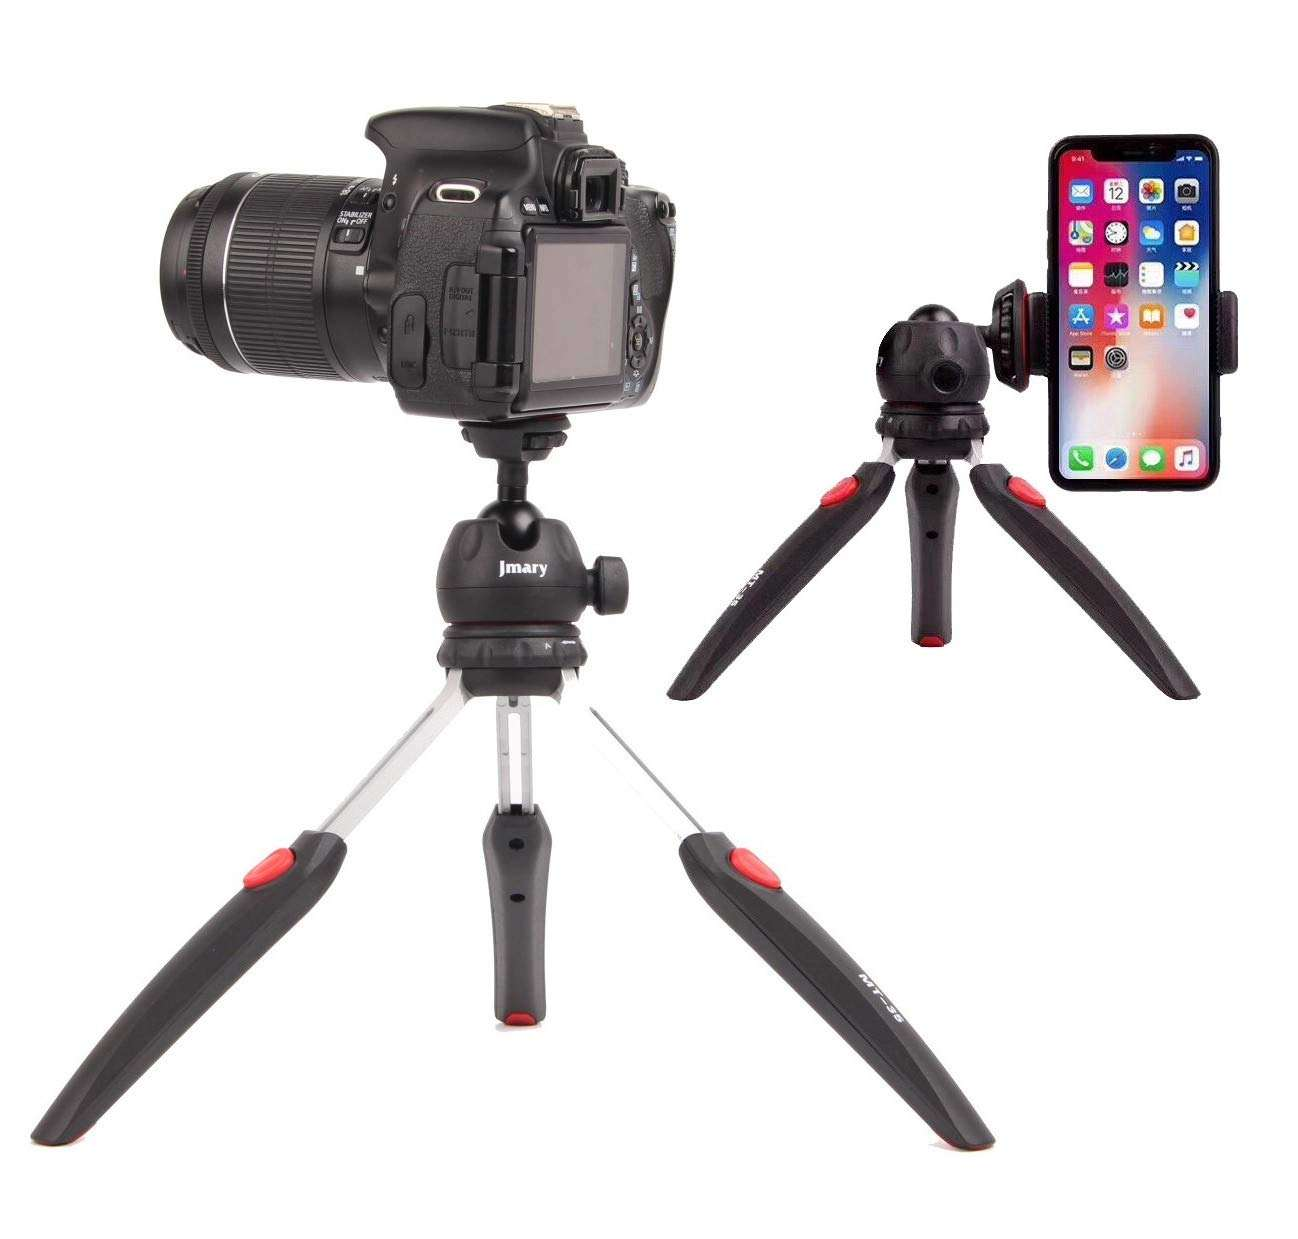 New Jmary MT-35 Table Top Mini Portable Foldable Extendable Tripod Stand for Mobile and DSLR & Digital Camera with phone holder